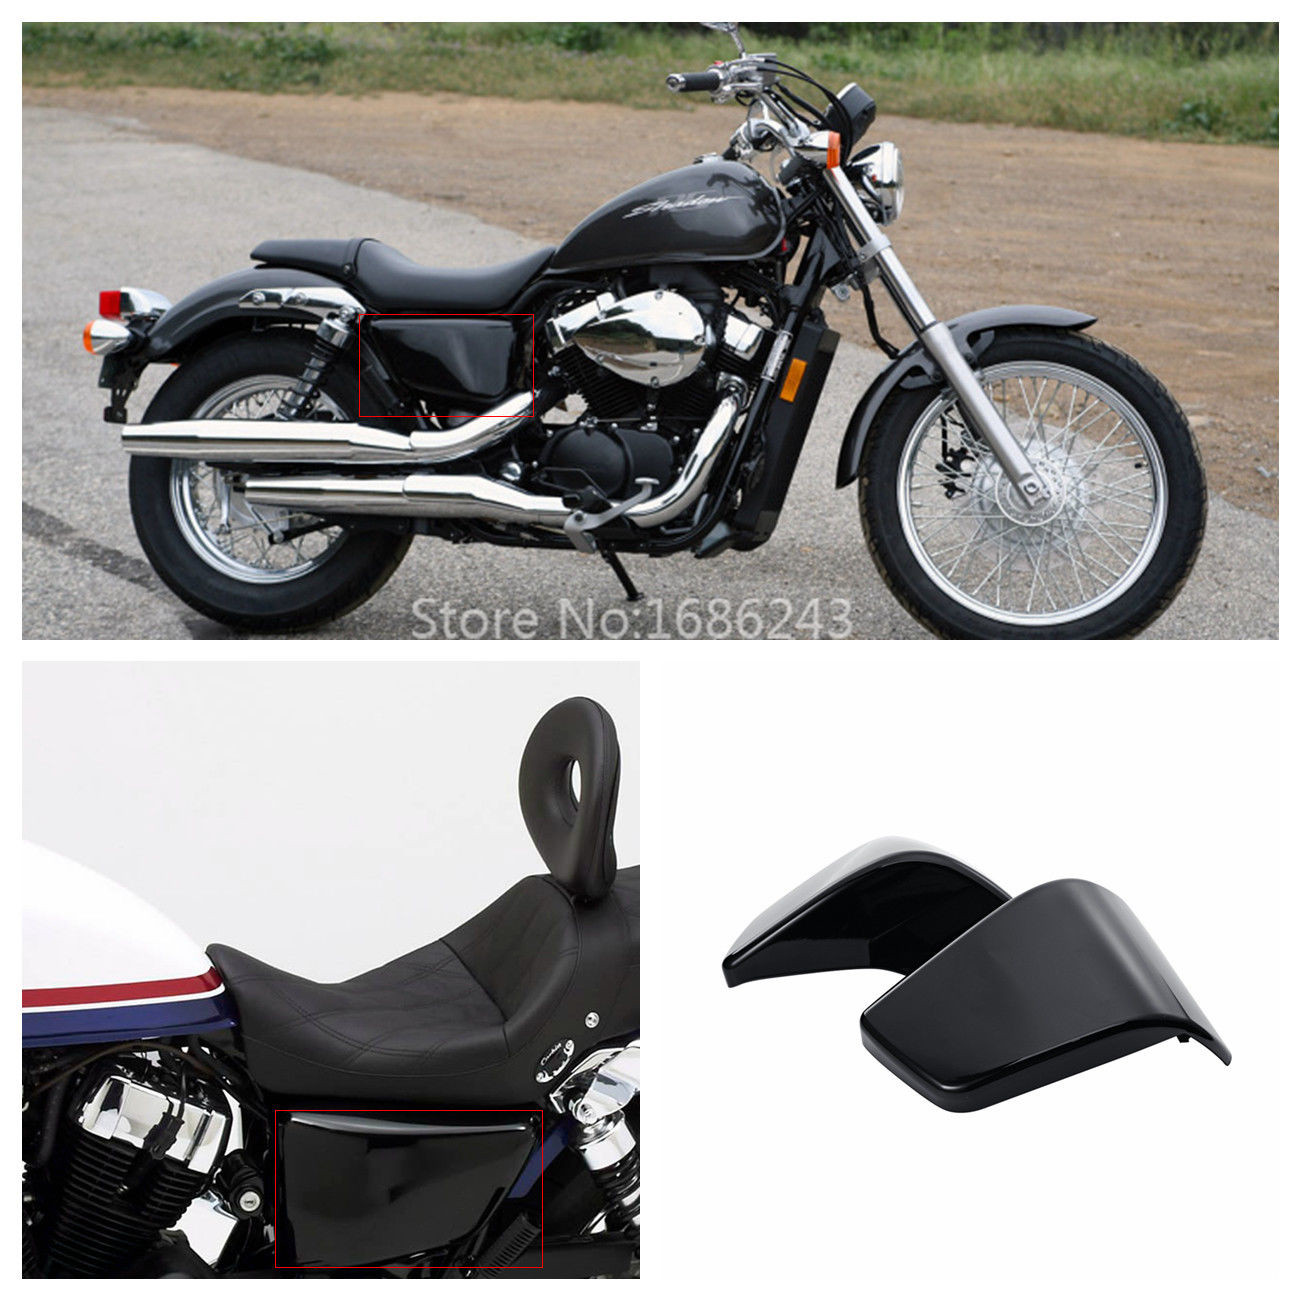 Black Battery Side Fairing Cover For Honda Shadow ACE 750 VT750 C D VT400 97-03